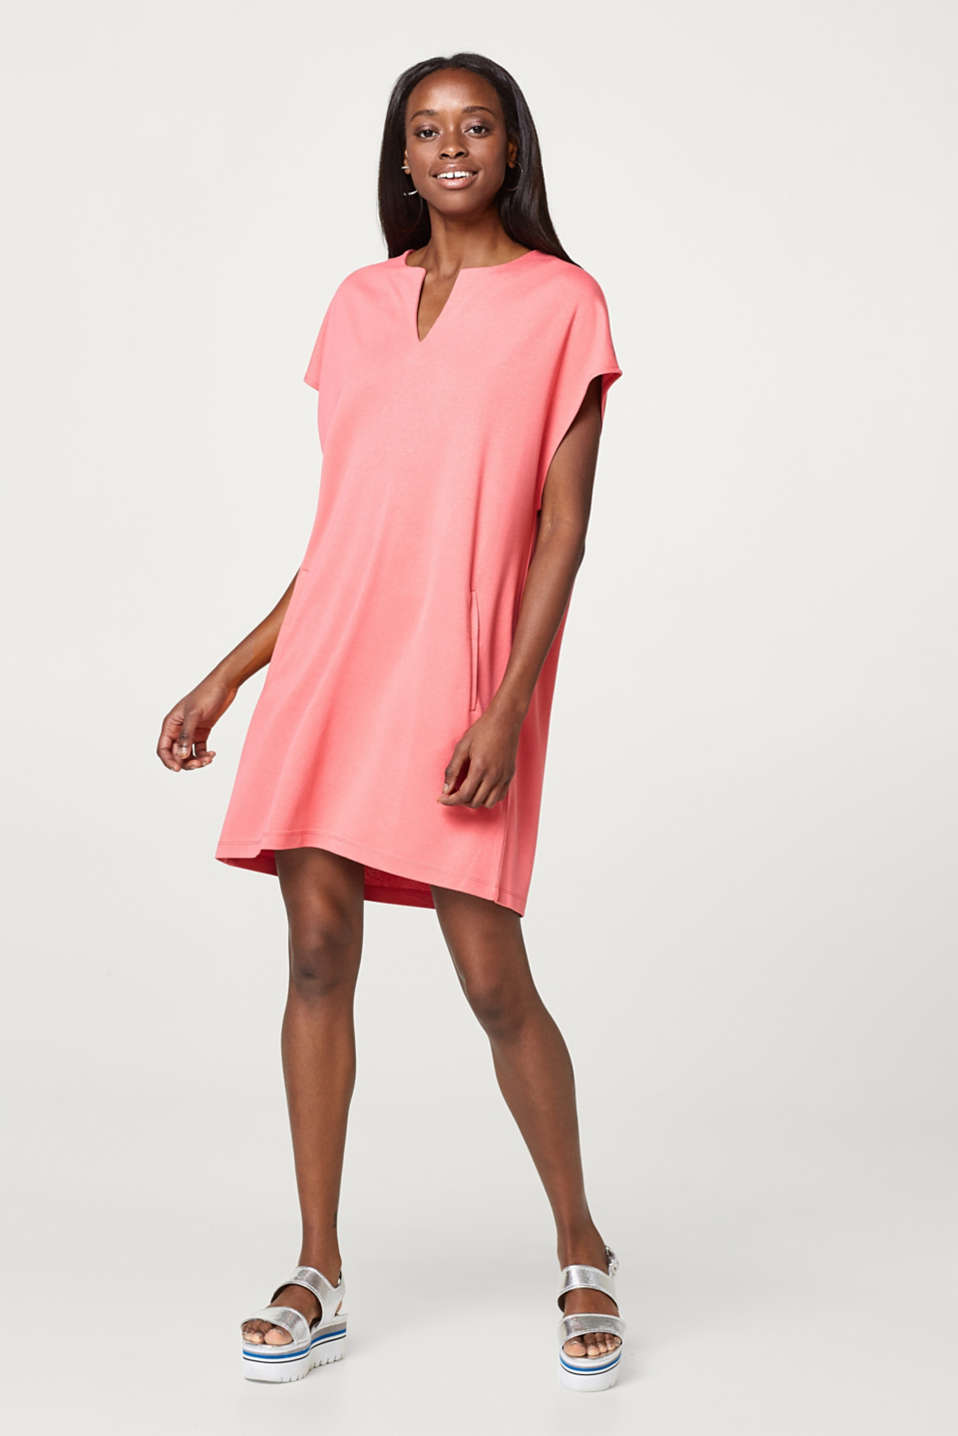 Softly draped jersey dress in an oversized style